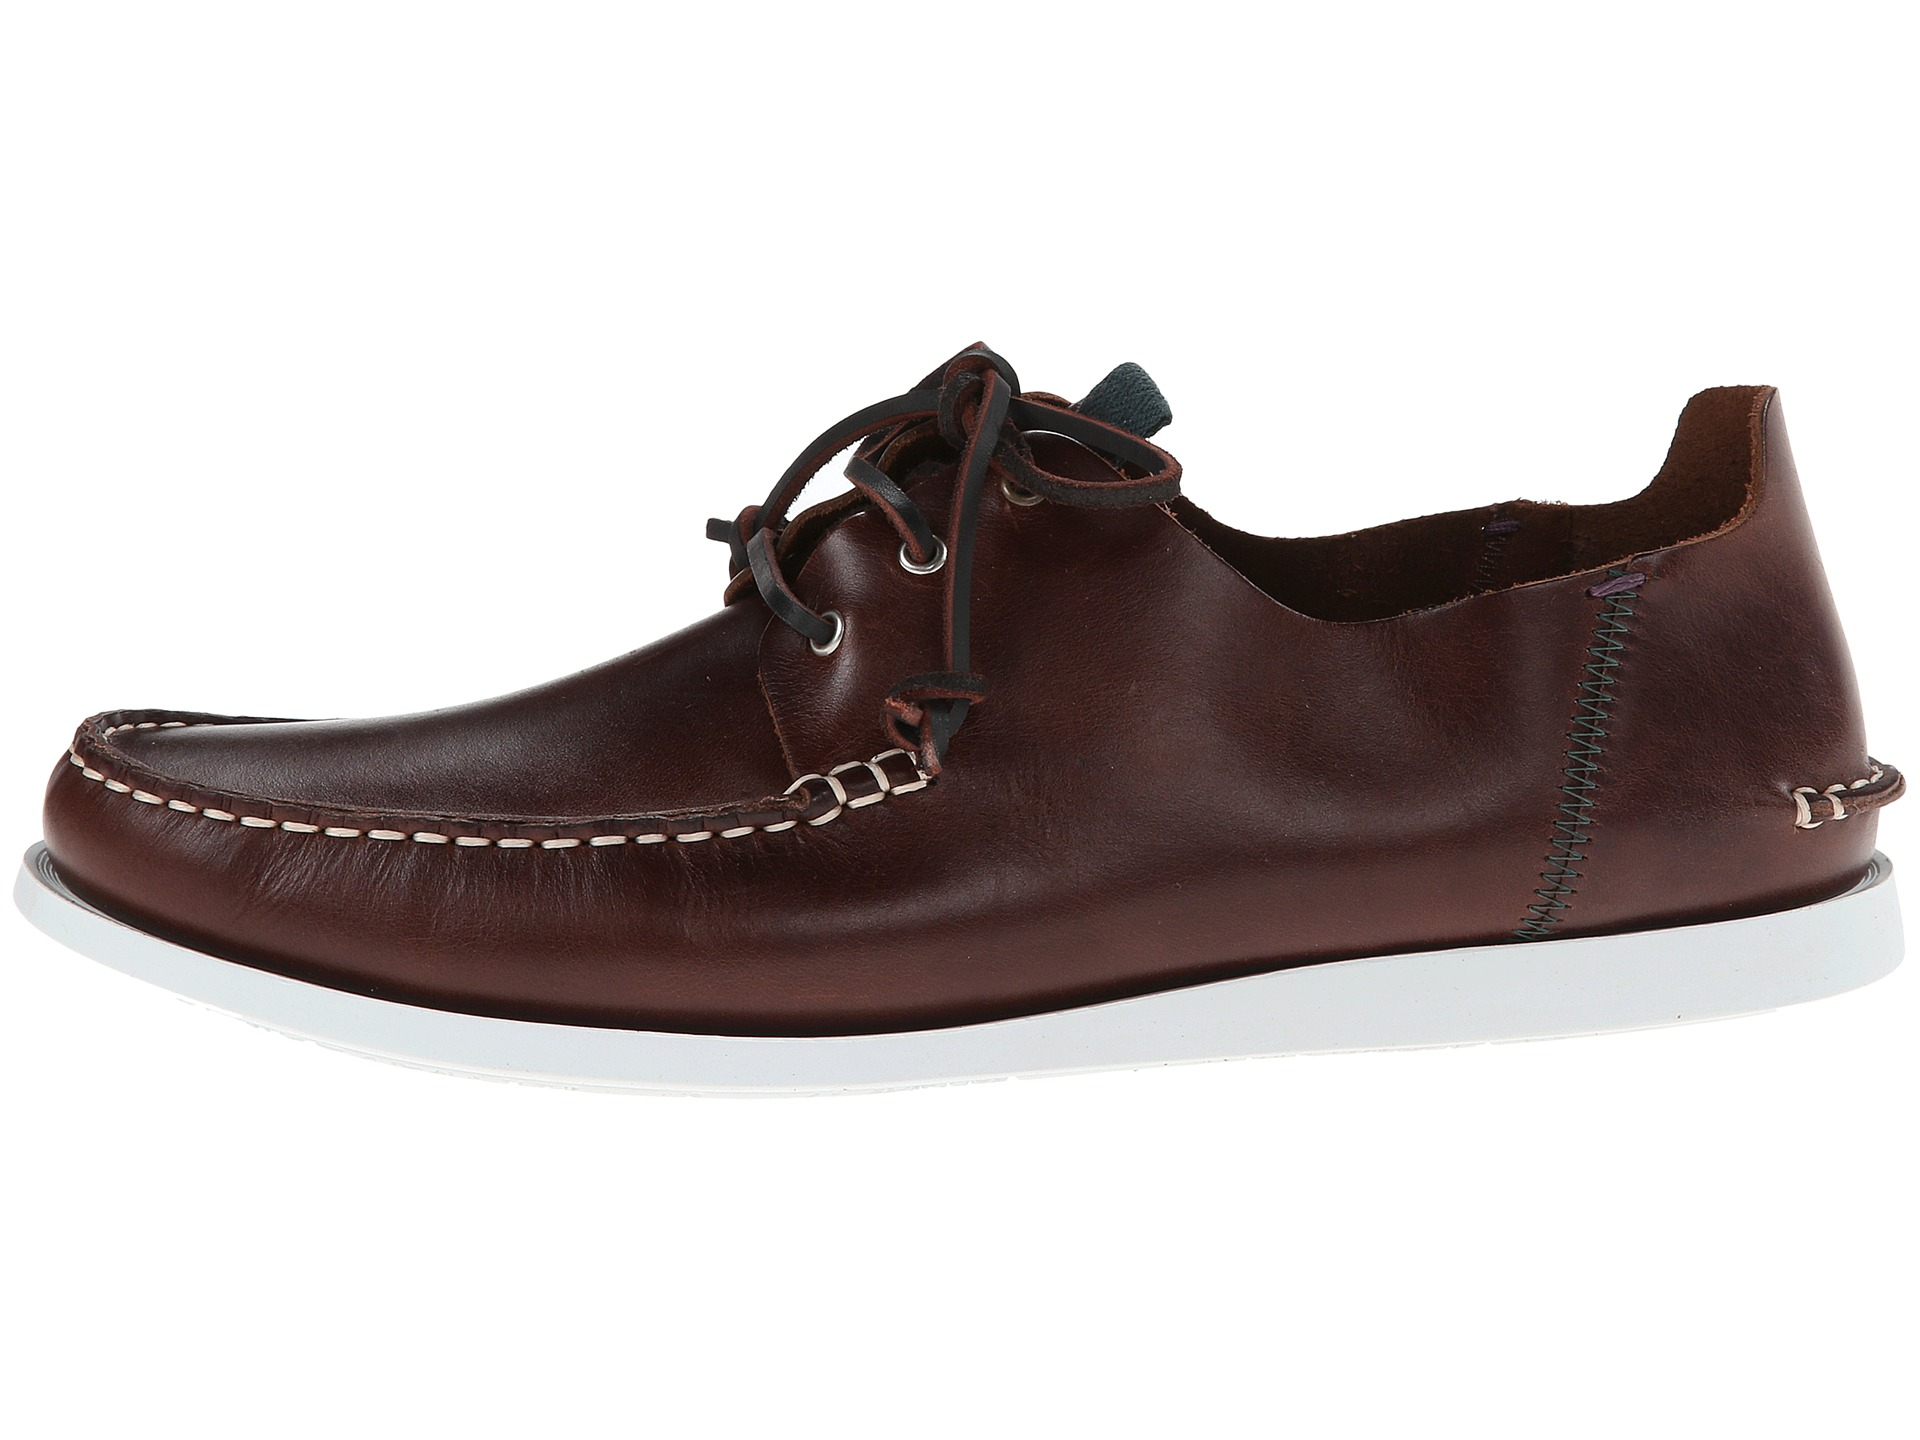 63a4a5f4b7b Lyst - Paul Smith Jeans Dagama Boat Shoe in Brown for Men